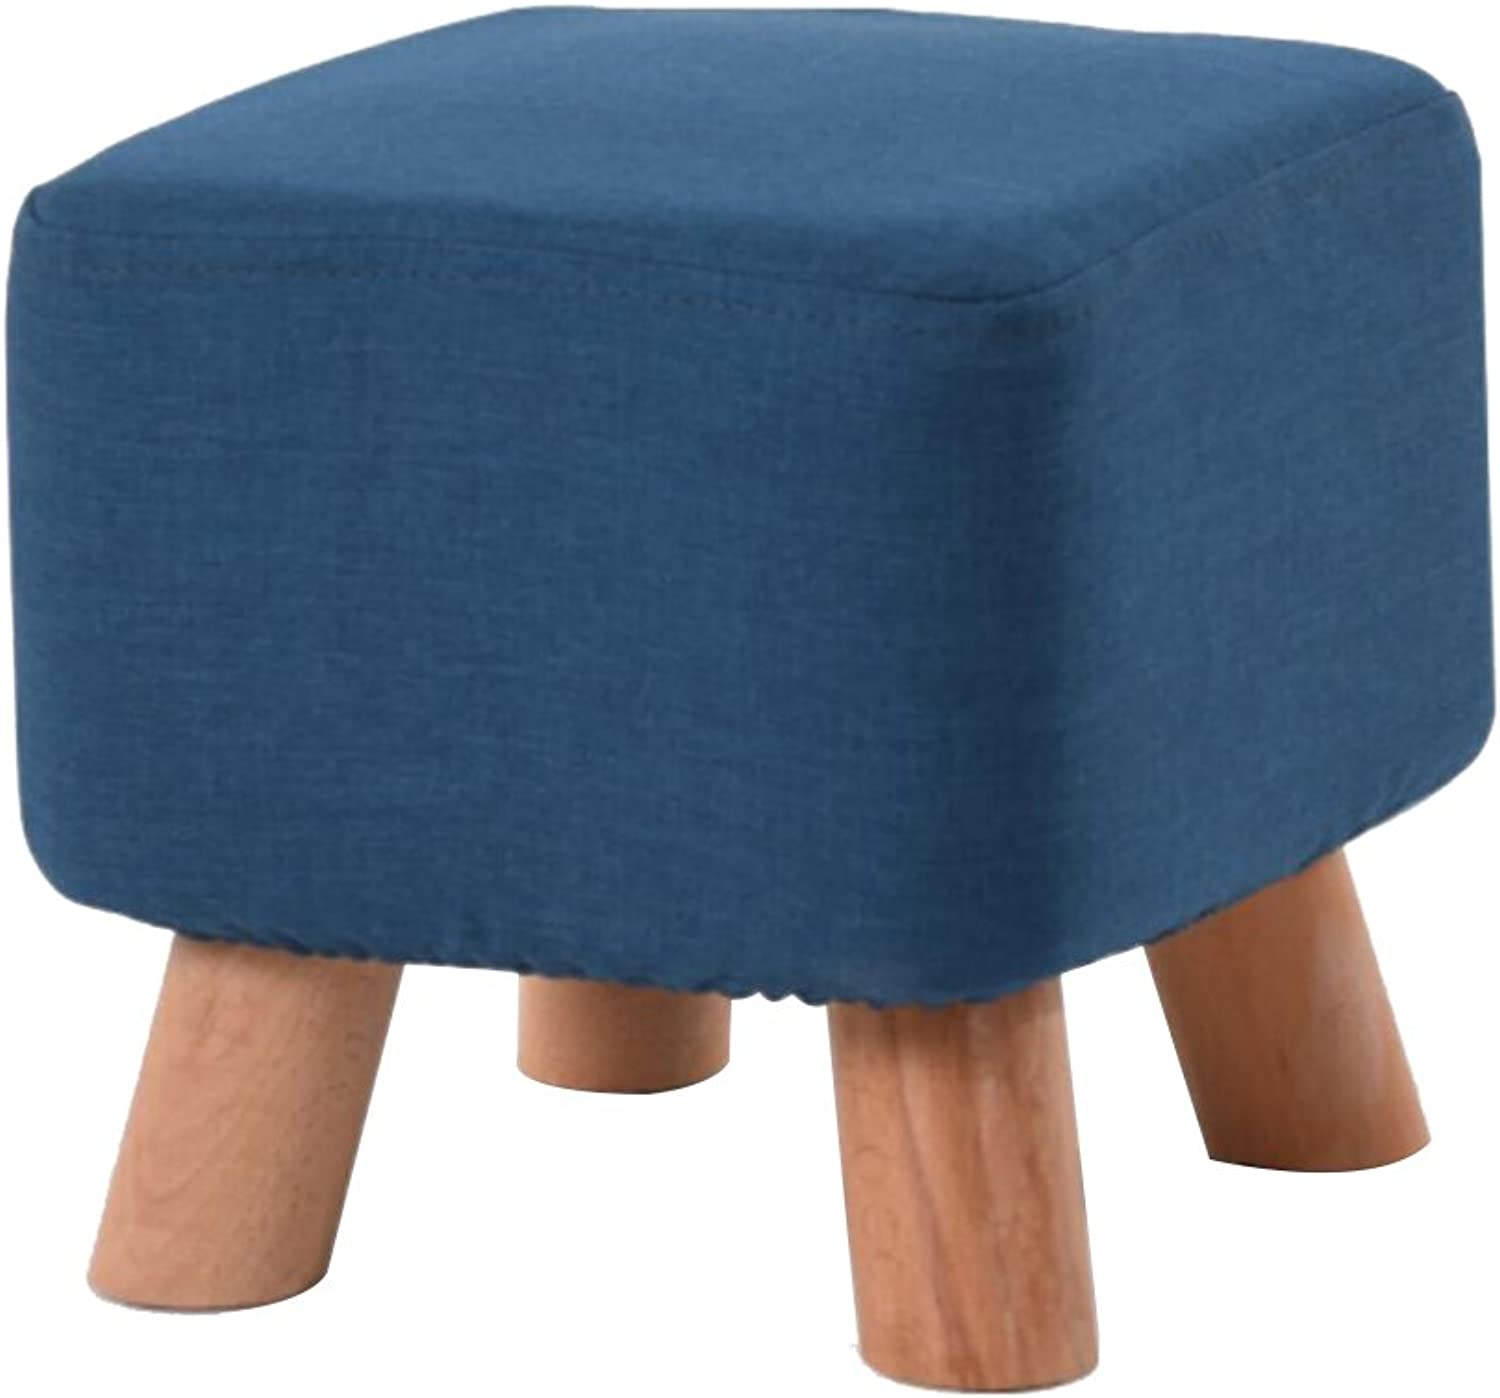 HQCC Solid Wood Stool Four Legs Simple Fabric Stool Square Stool Living Room Change shoes Bench Coffee Table Sofa Stool (color   bluee)